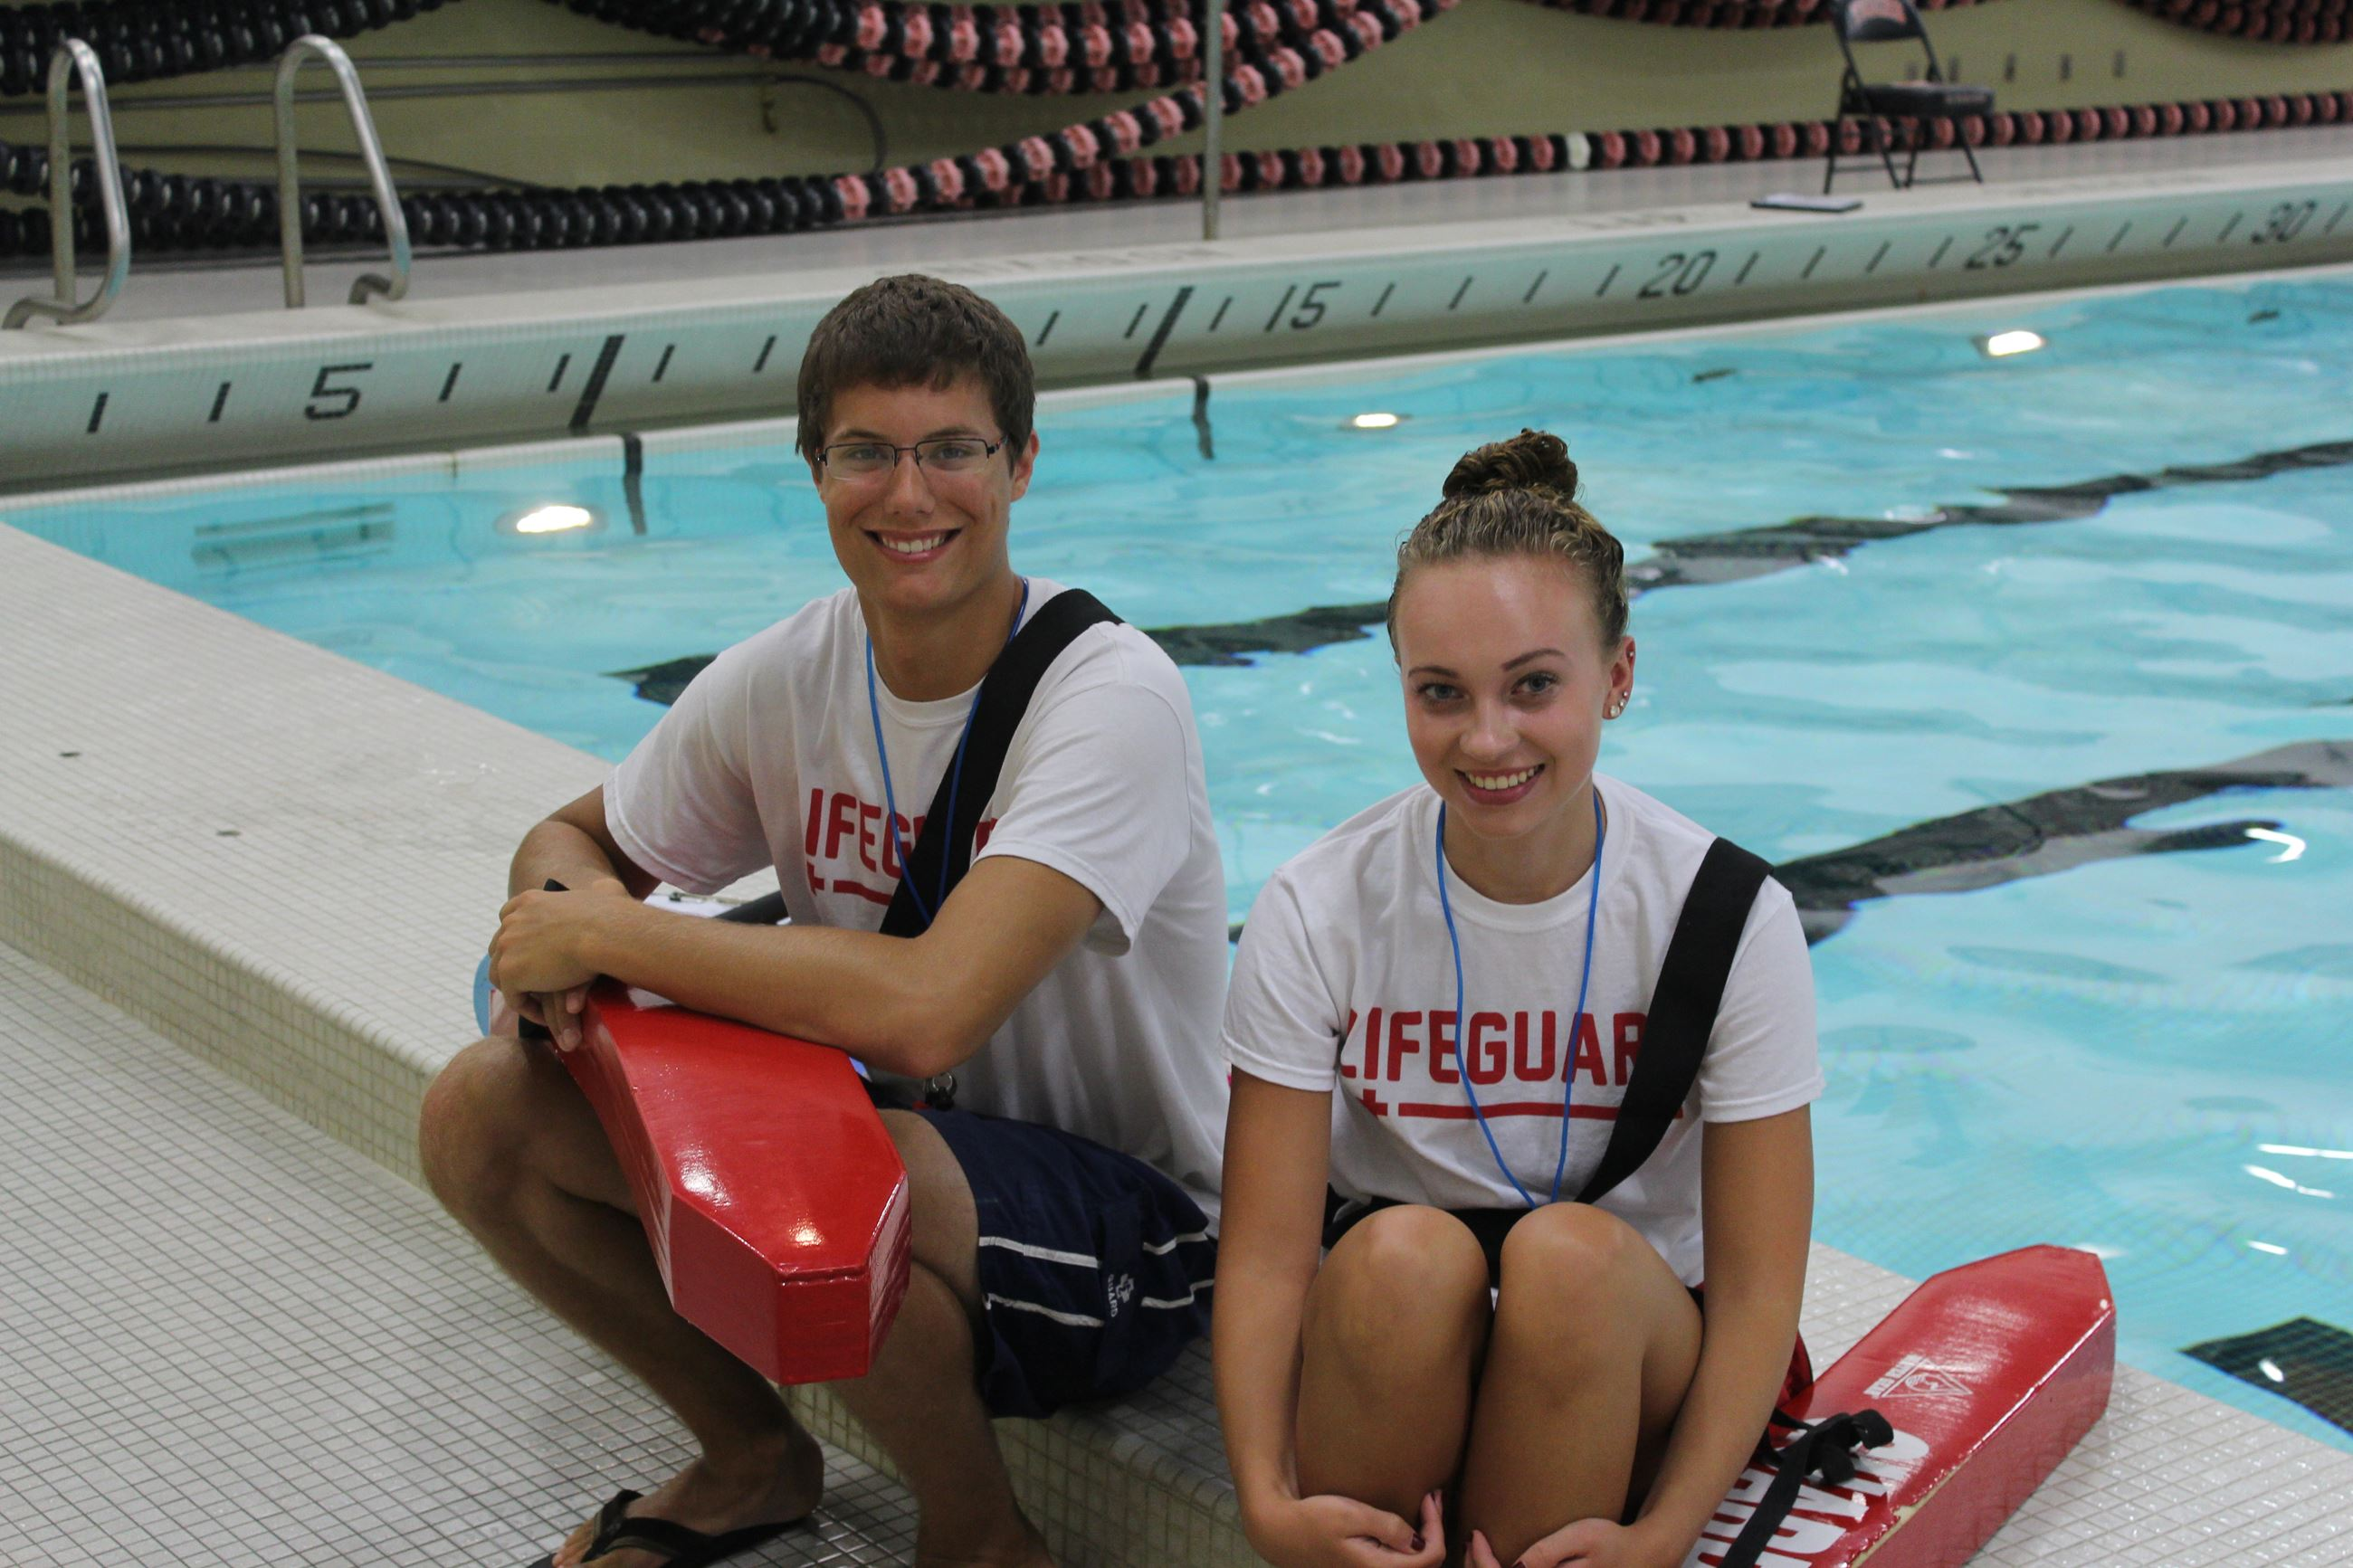 employment st cloud mn official website lifeguard staff